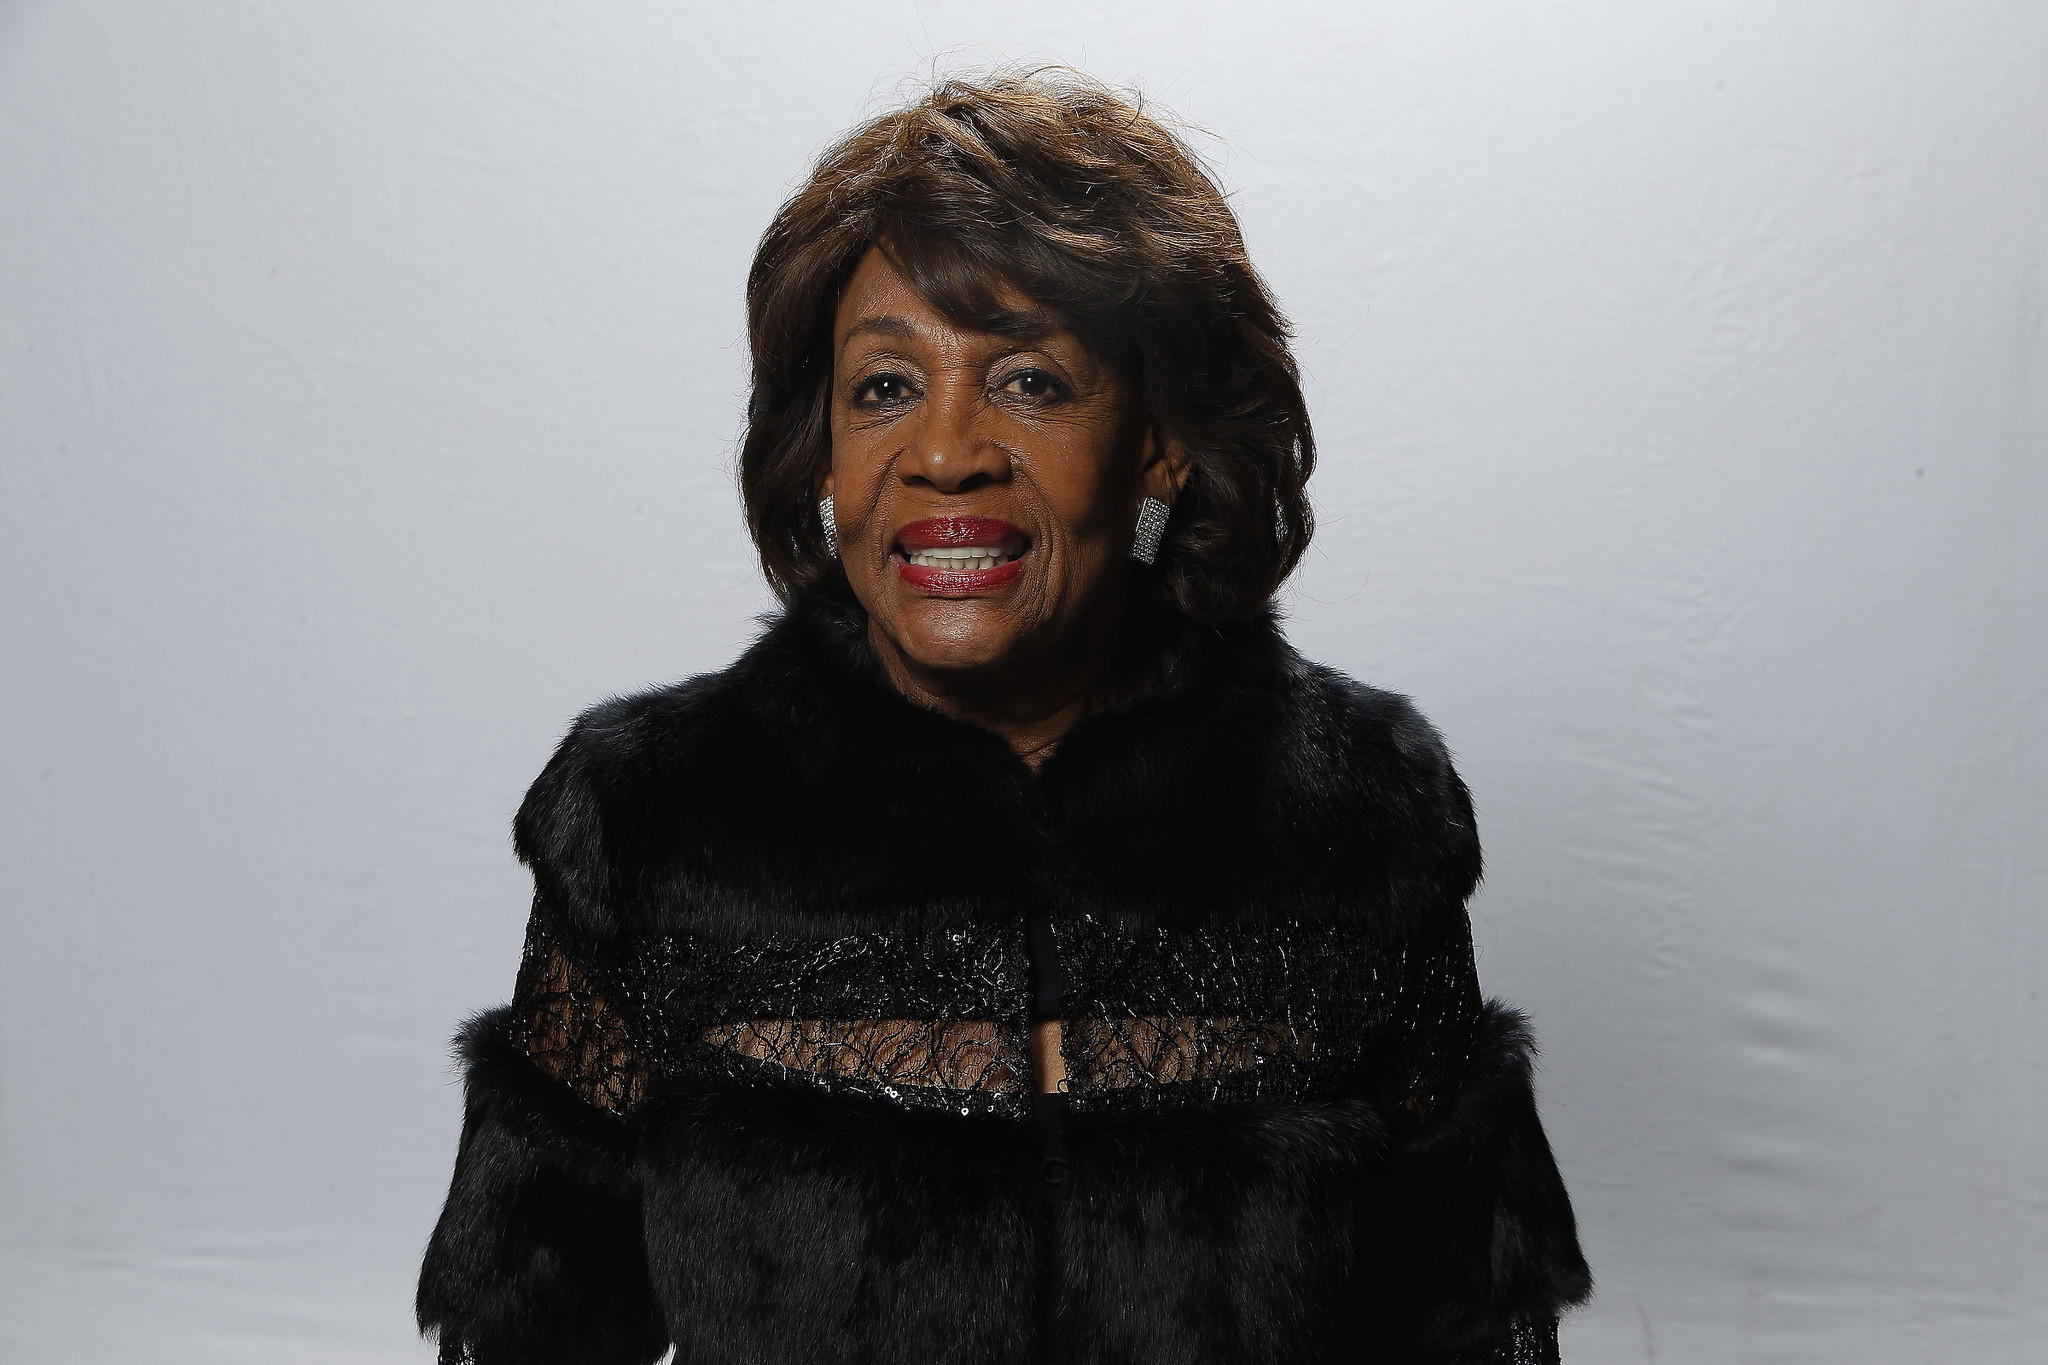 Rep. Maxine Waters. (Kirk McKoy / Los Angeles Times)